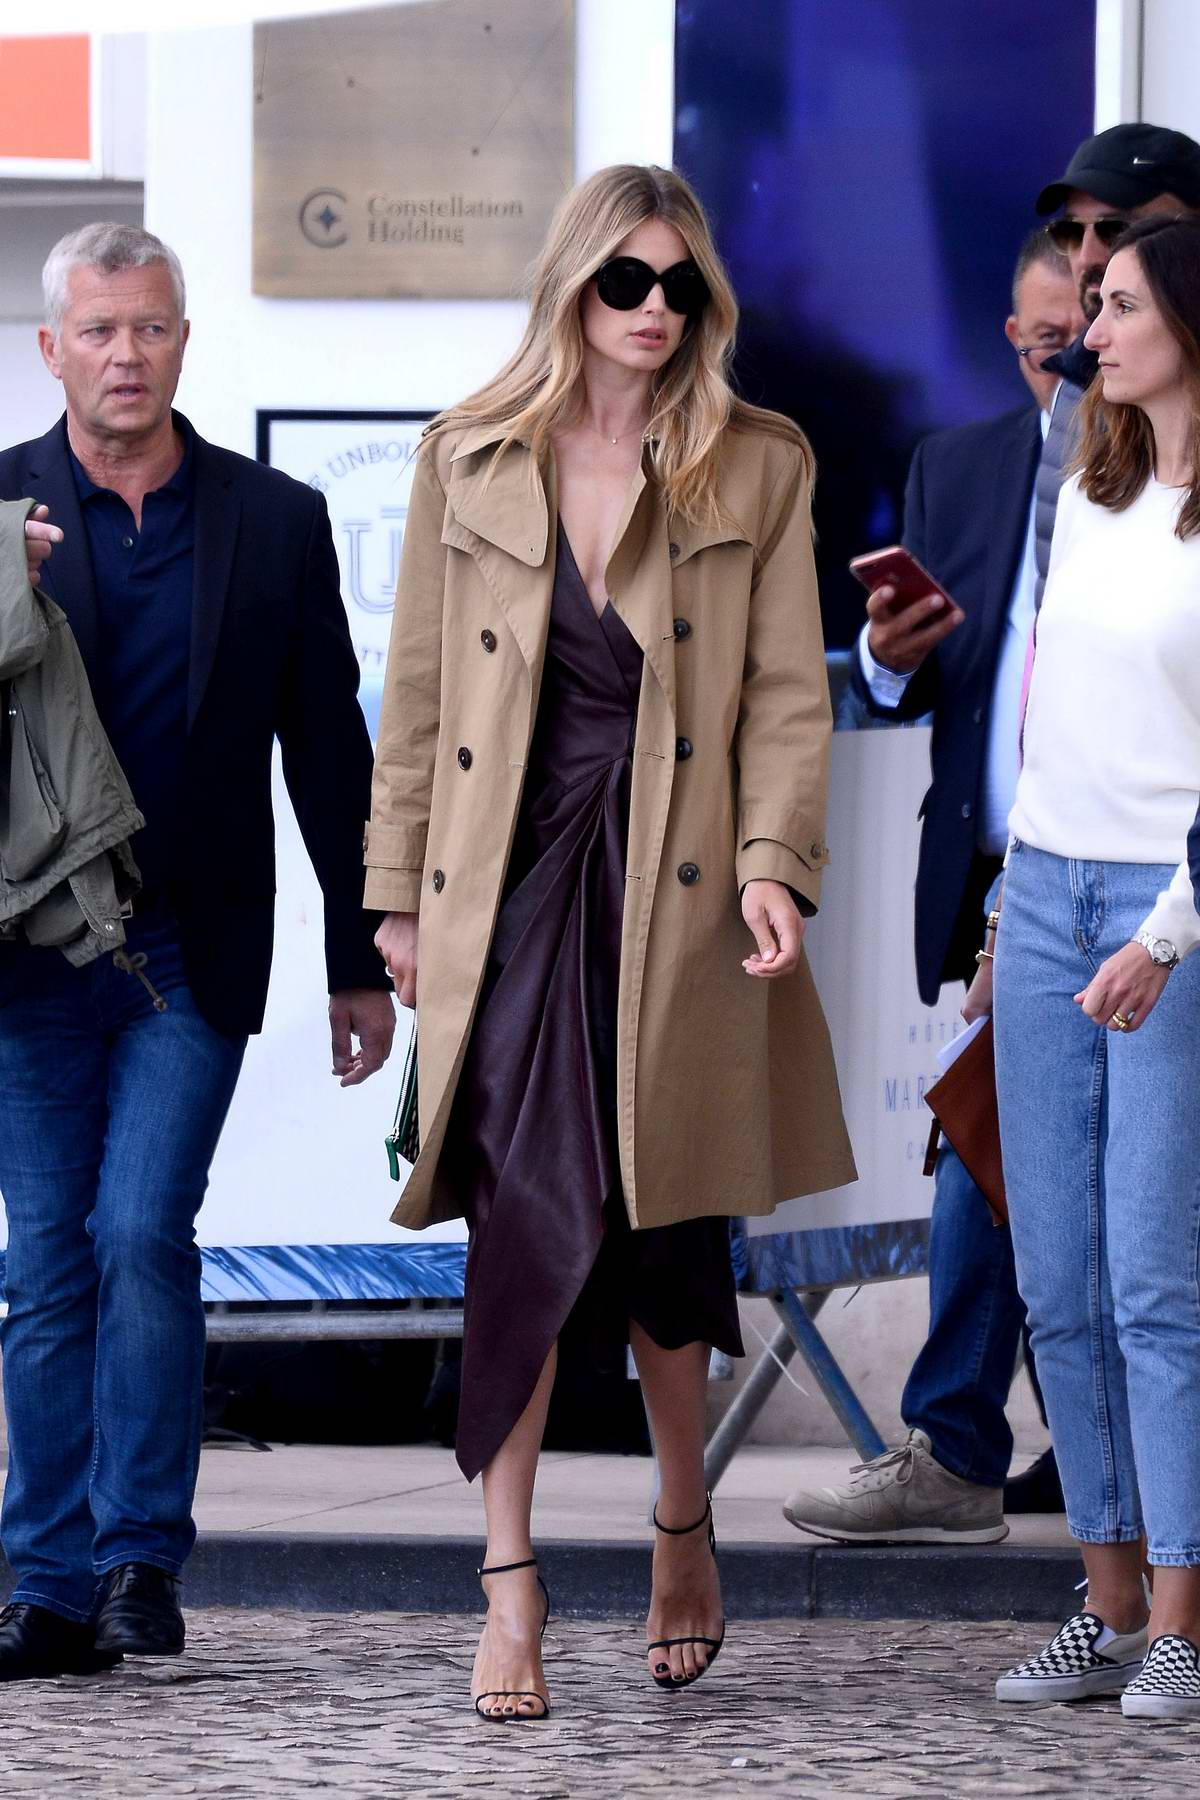 Doutzen Kroes spotted on a L'Oréal Paris photoshoot during 72nd Cannes Film Festival in Cannes, France